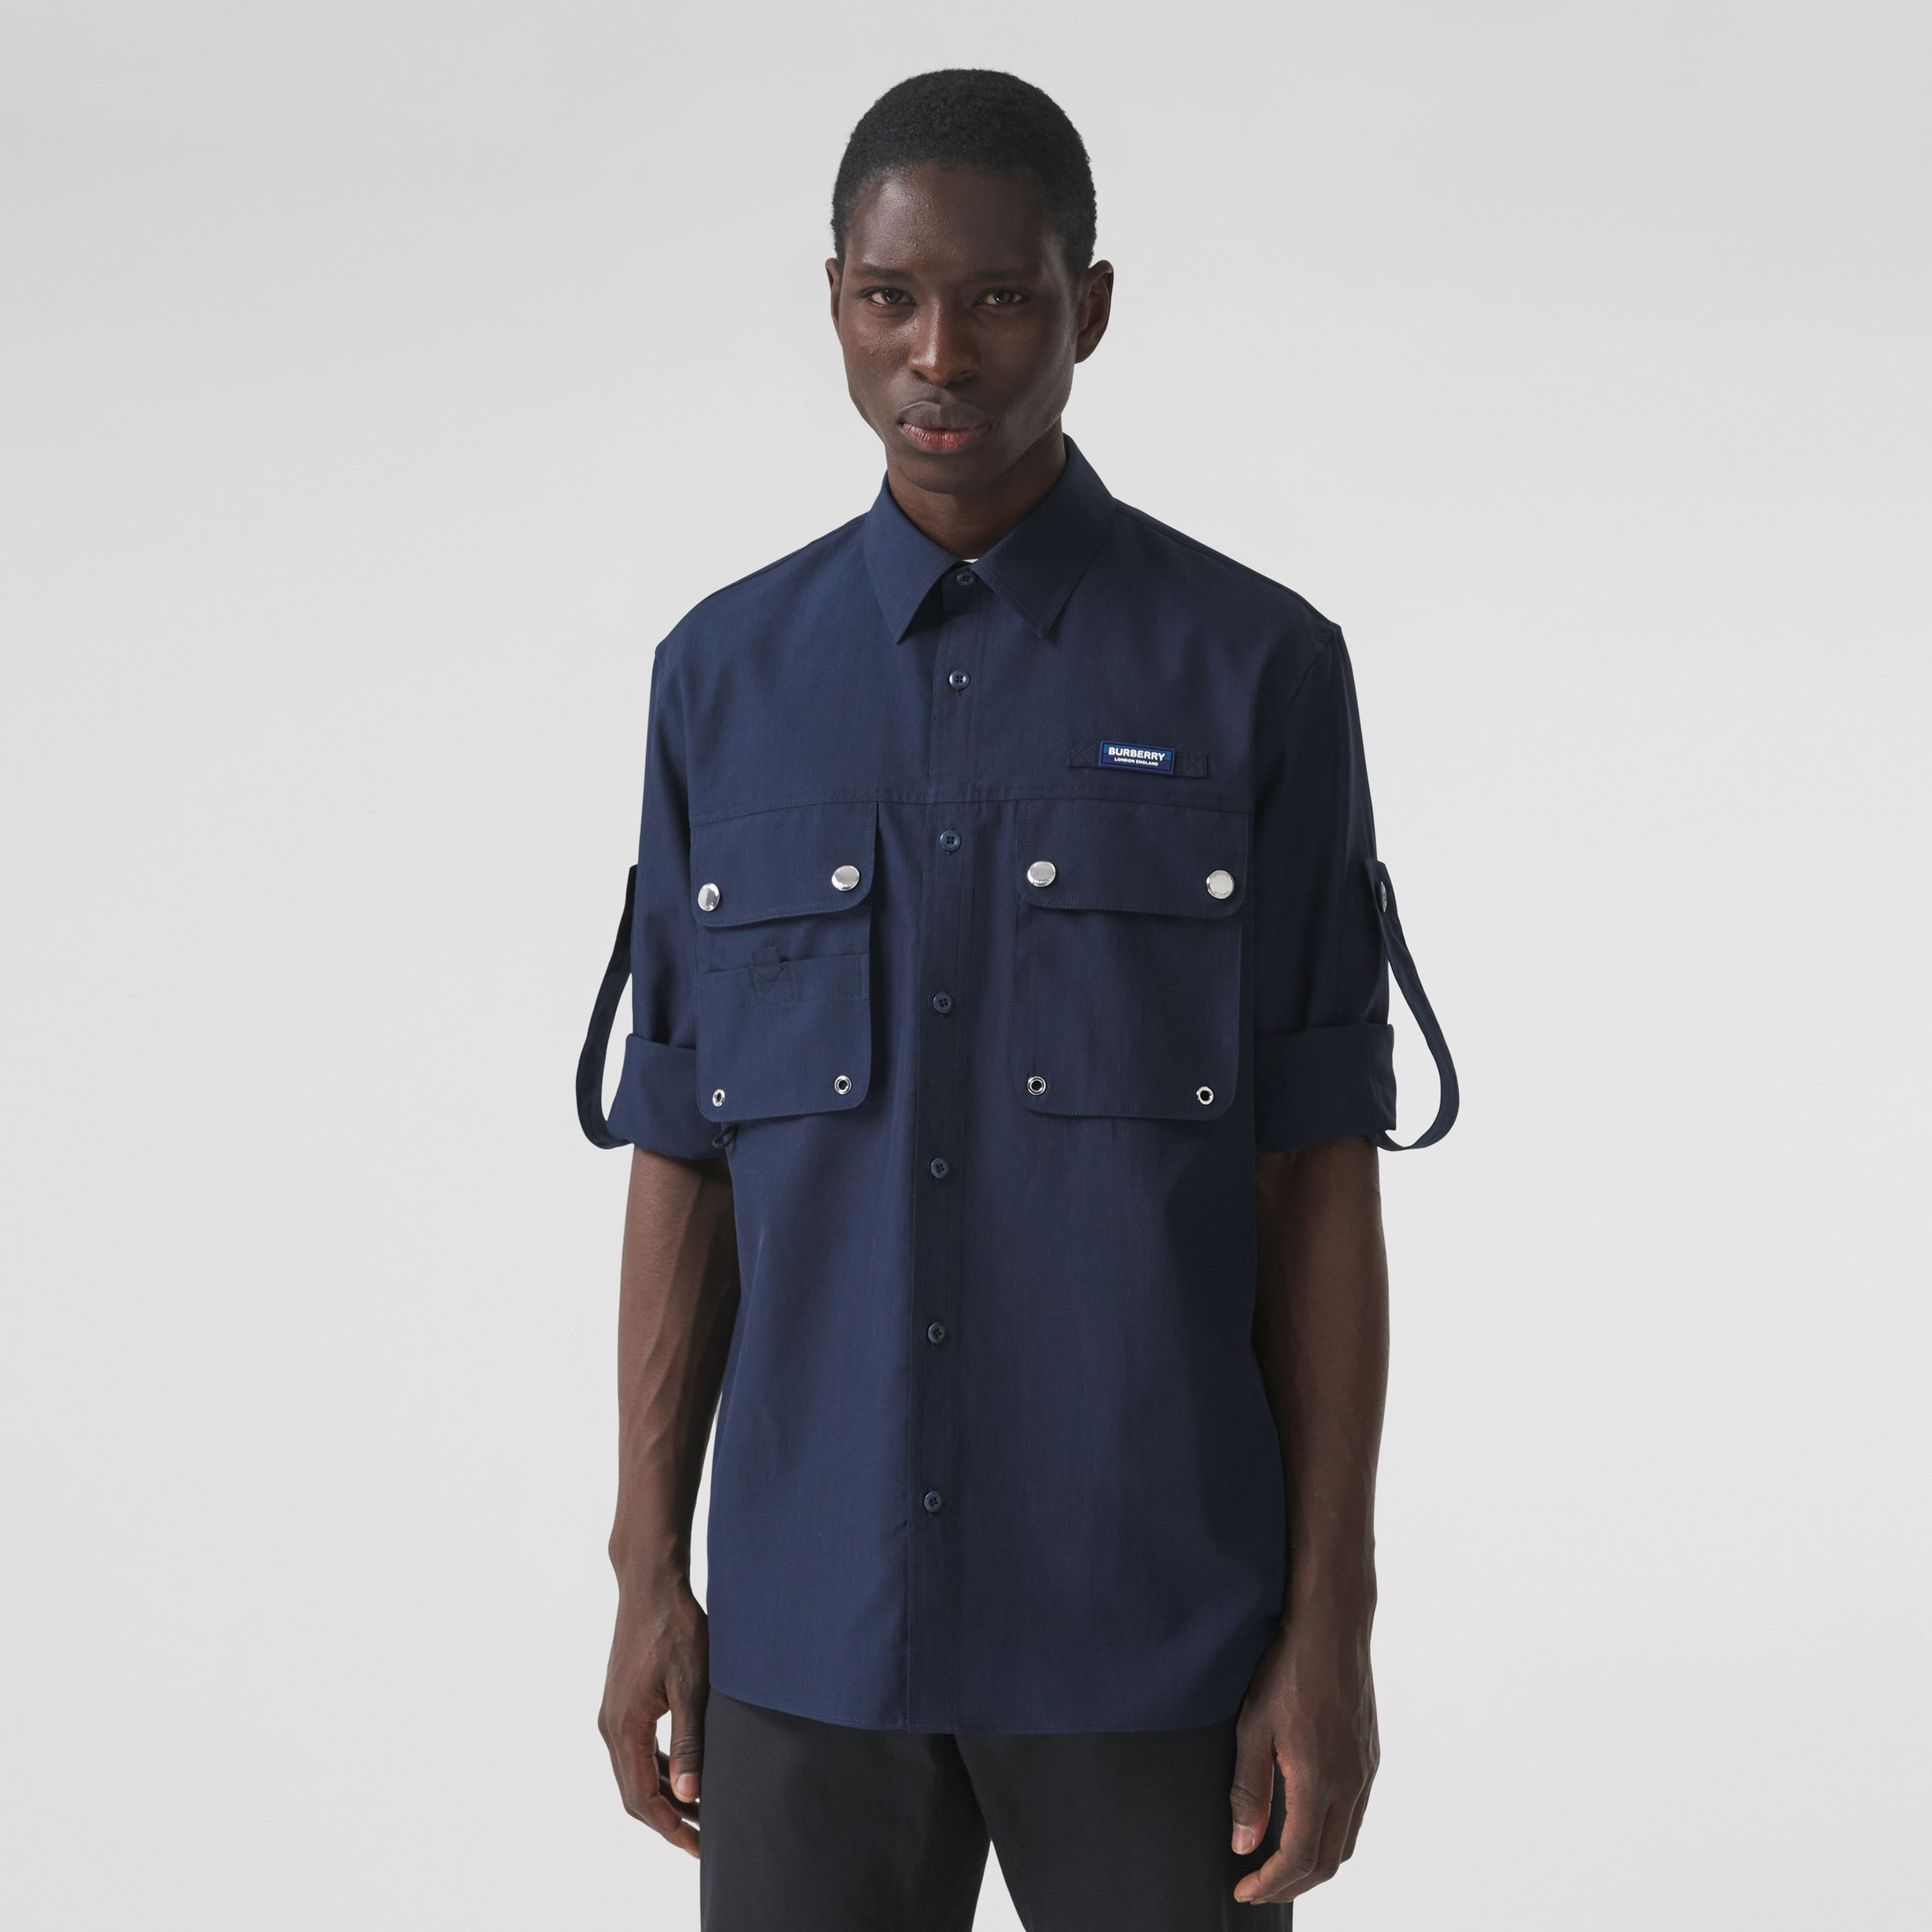 Logo Appliqué Cotton Silk Shirt in Ink Blue - Men | Burberry - 1